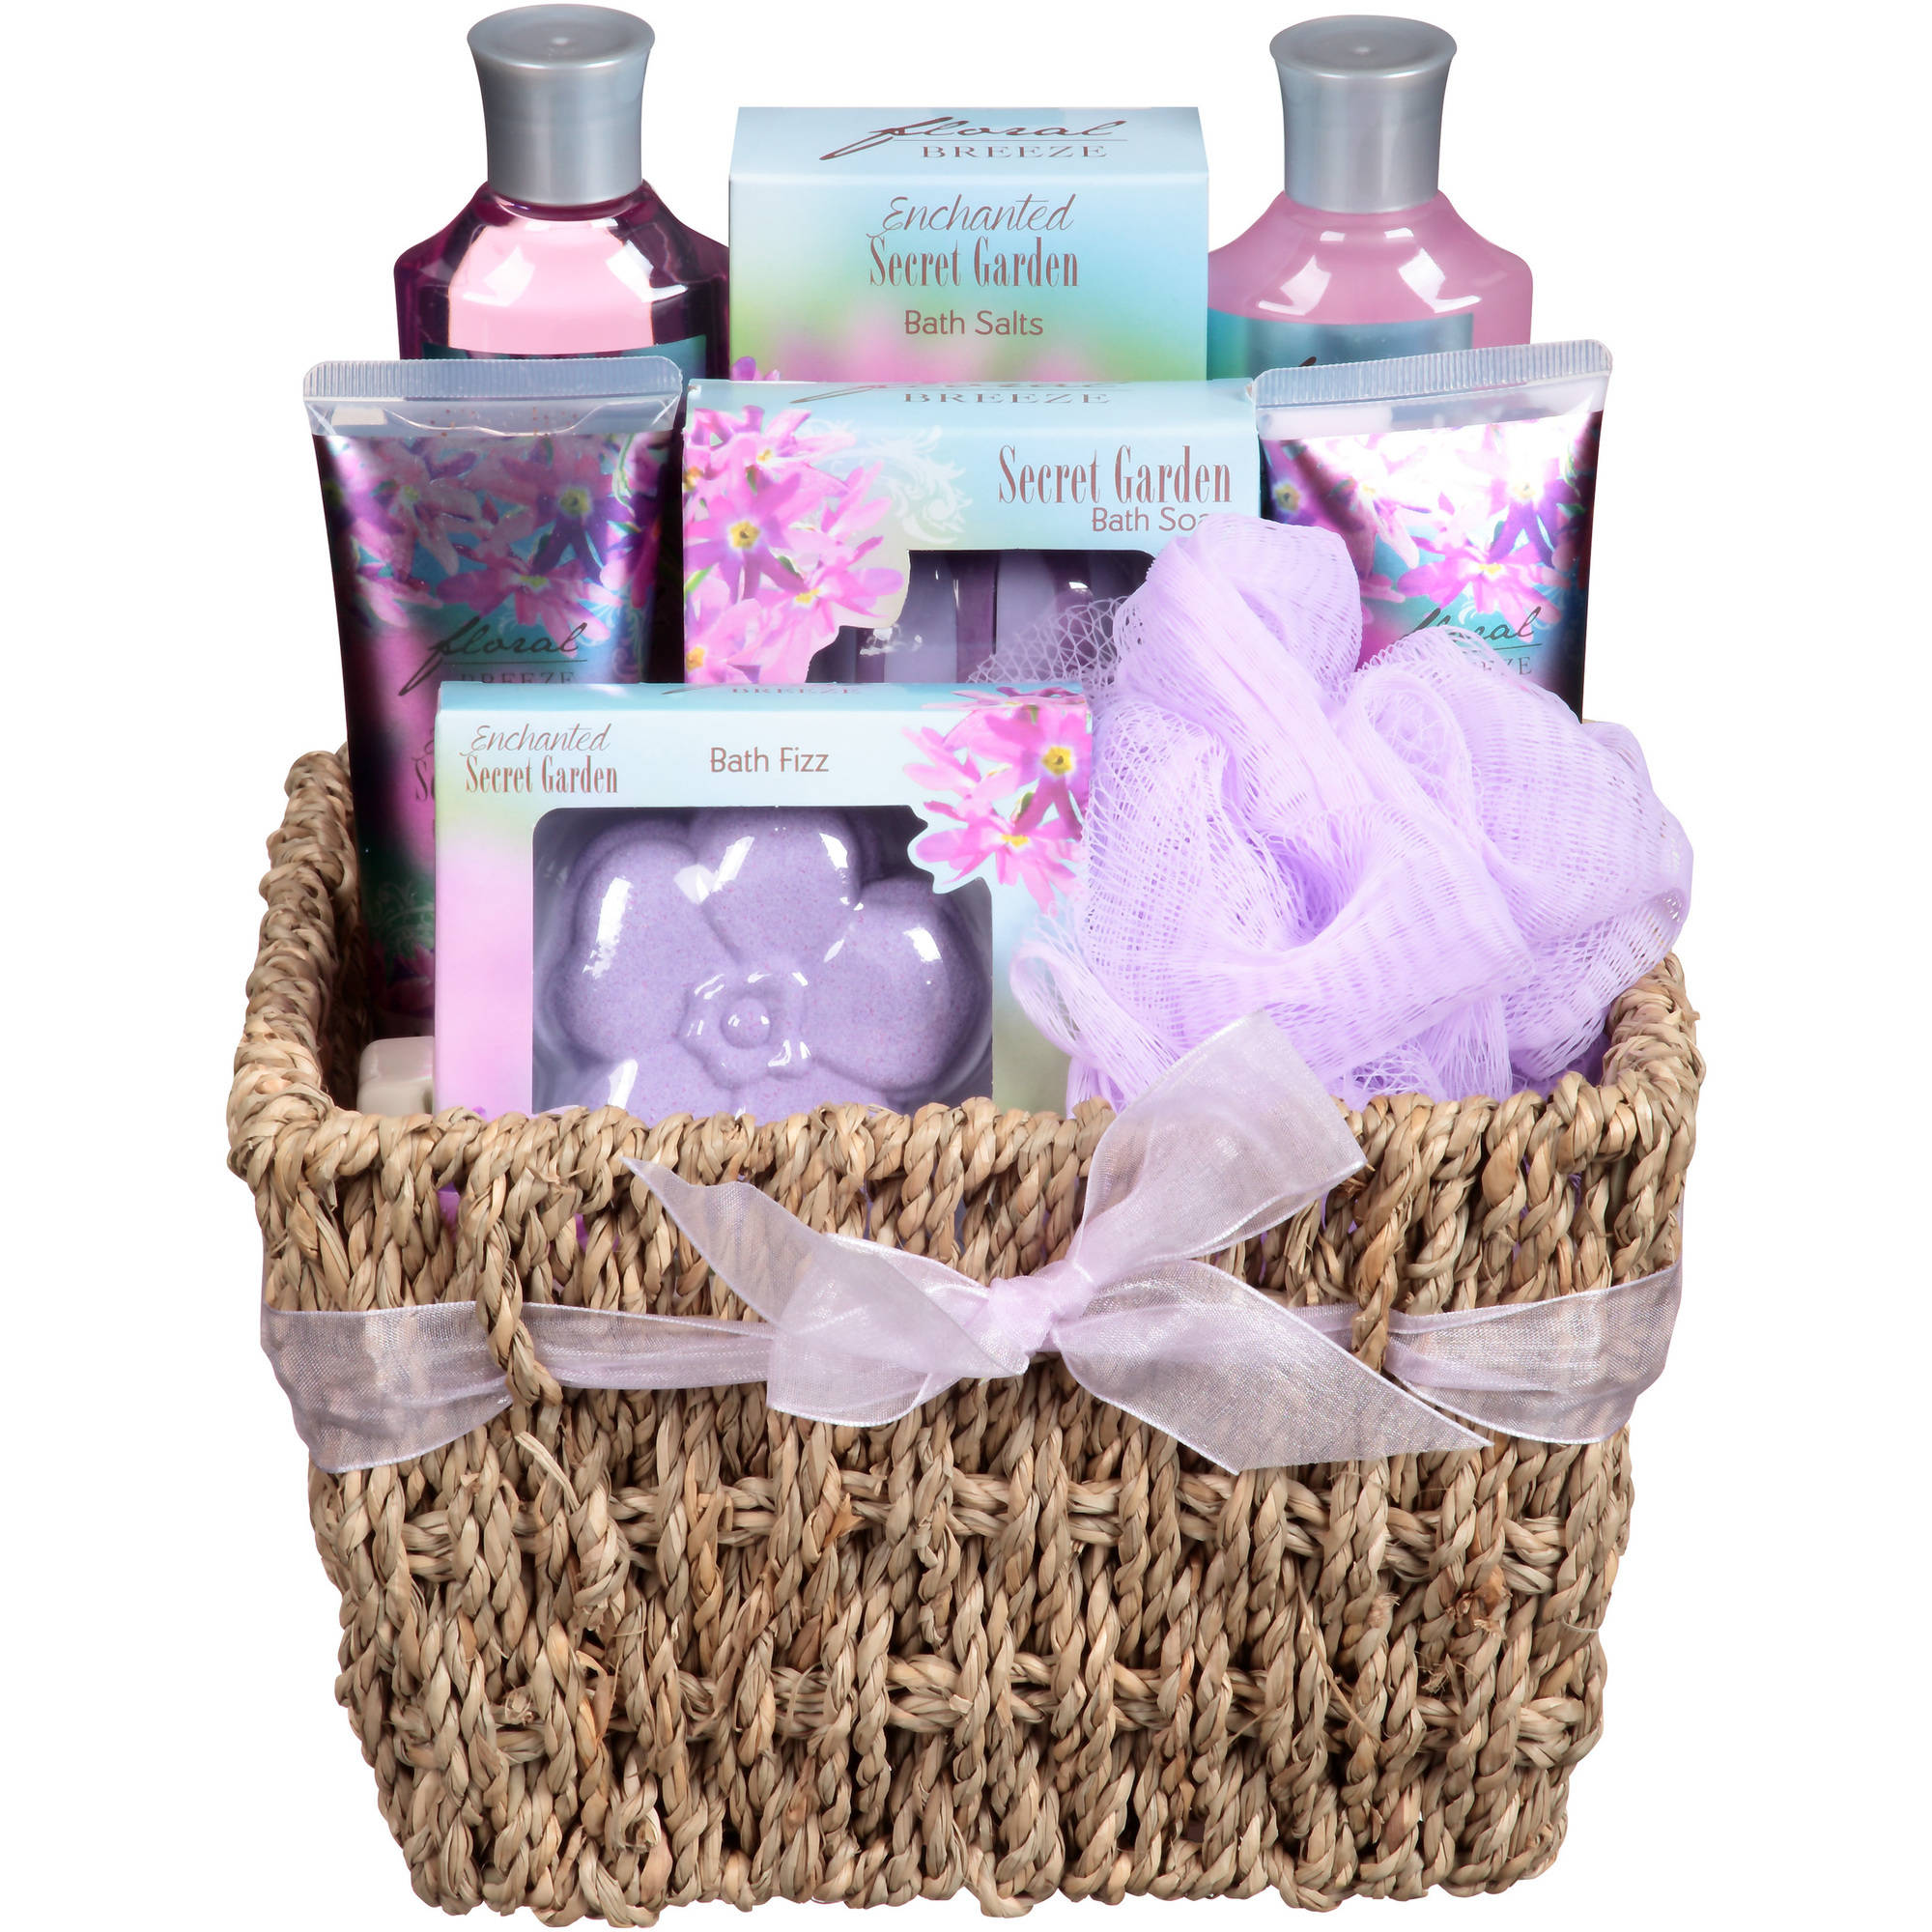 bathroom gift basket ideas bathroom gift basket bathroom design ideas 15906